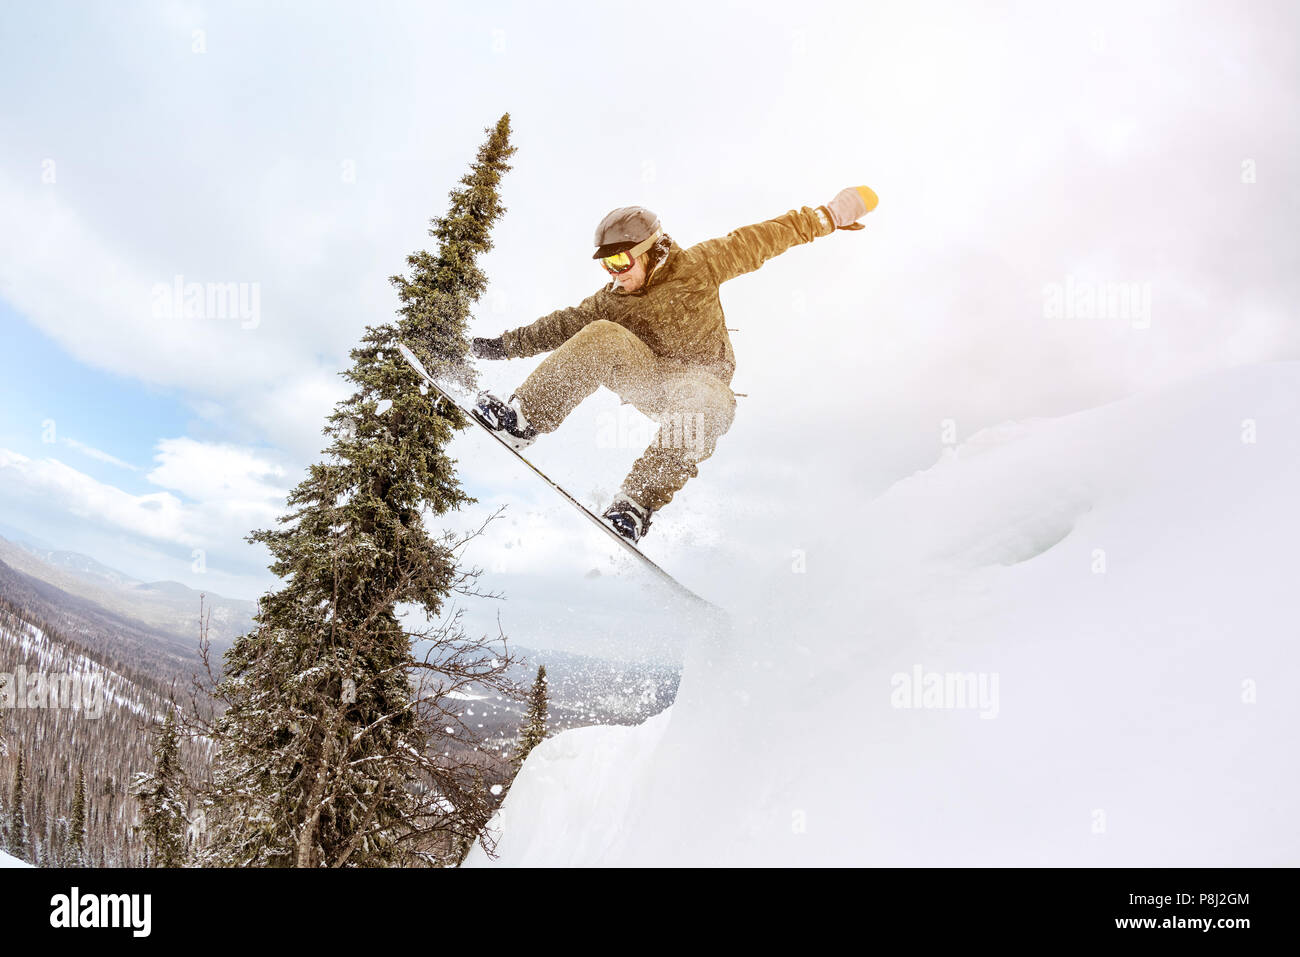 Snowboarder jumps from big snowdrift at offpiste forest slope. Freeride concept - Stock Image